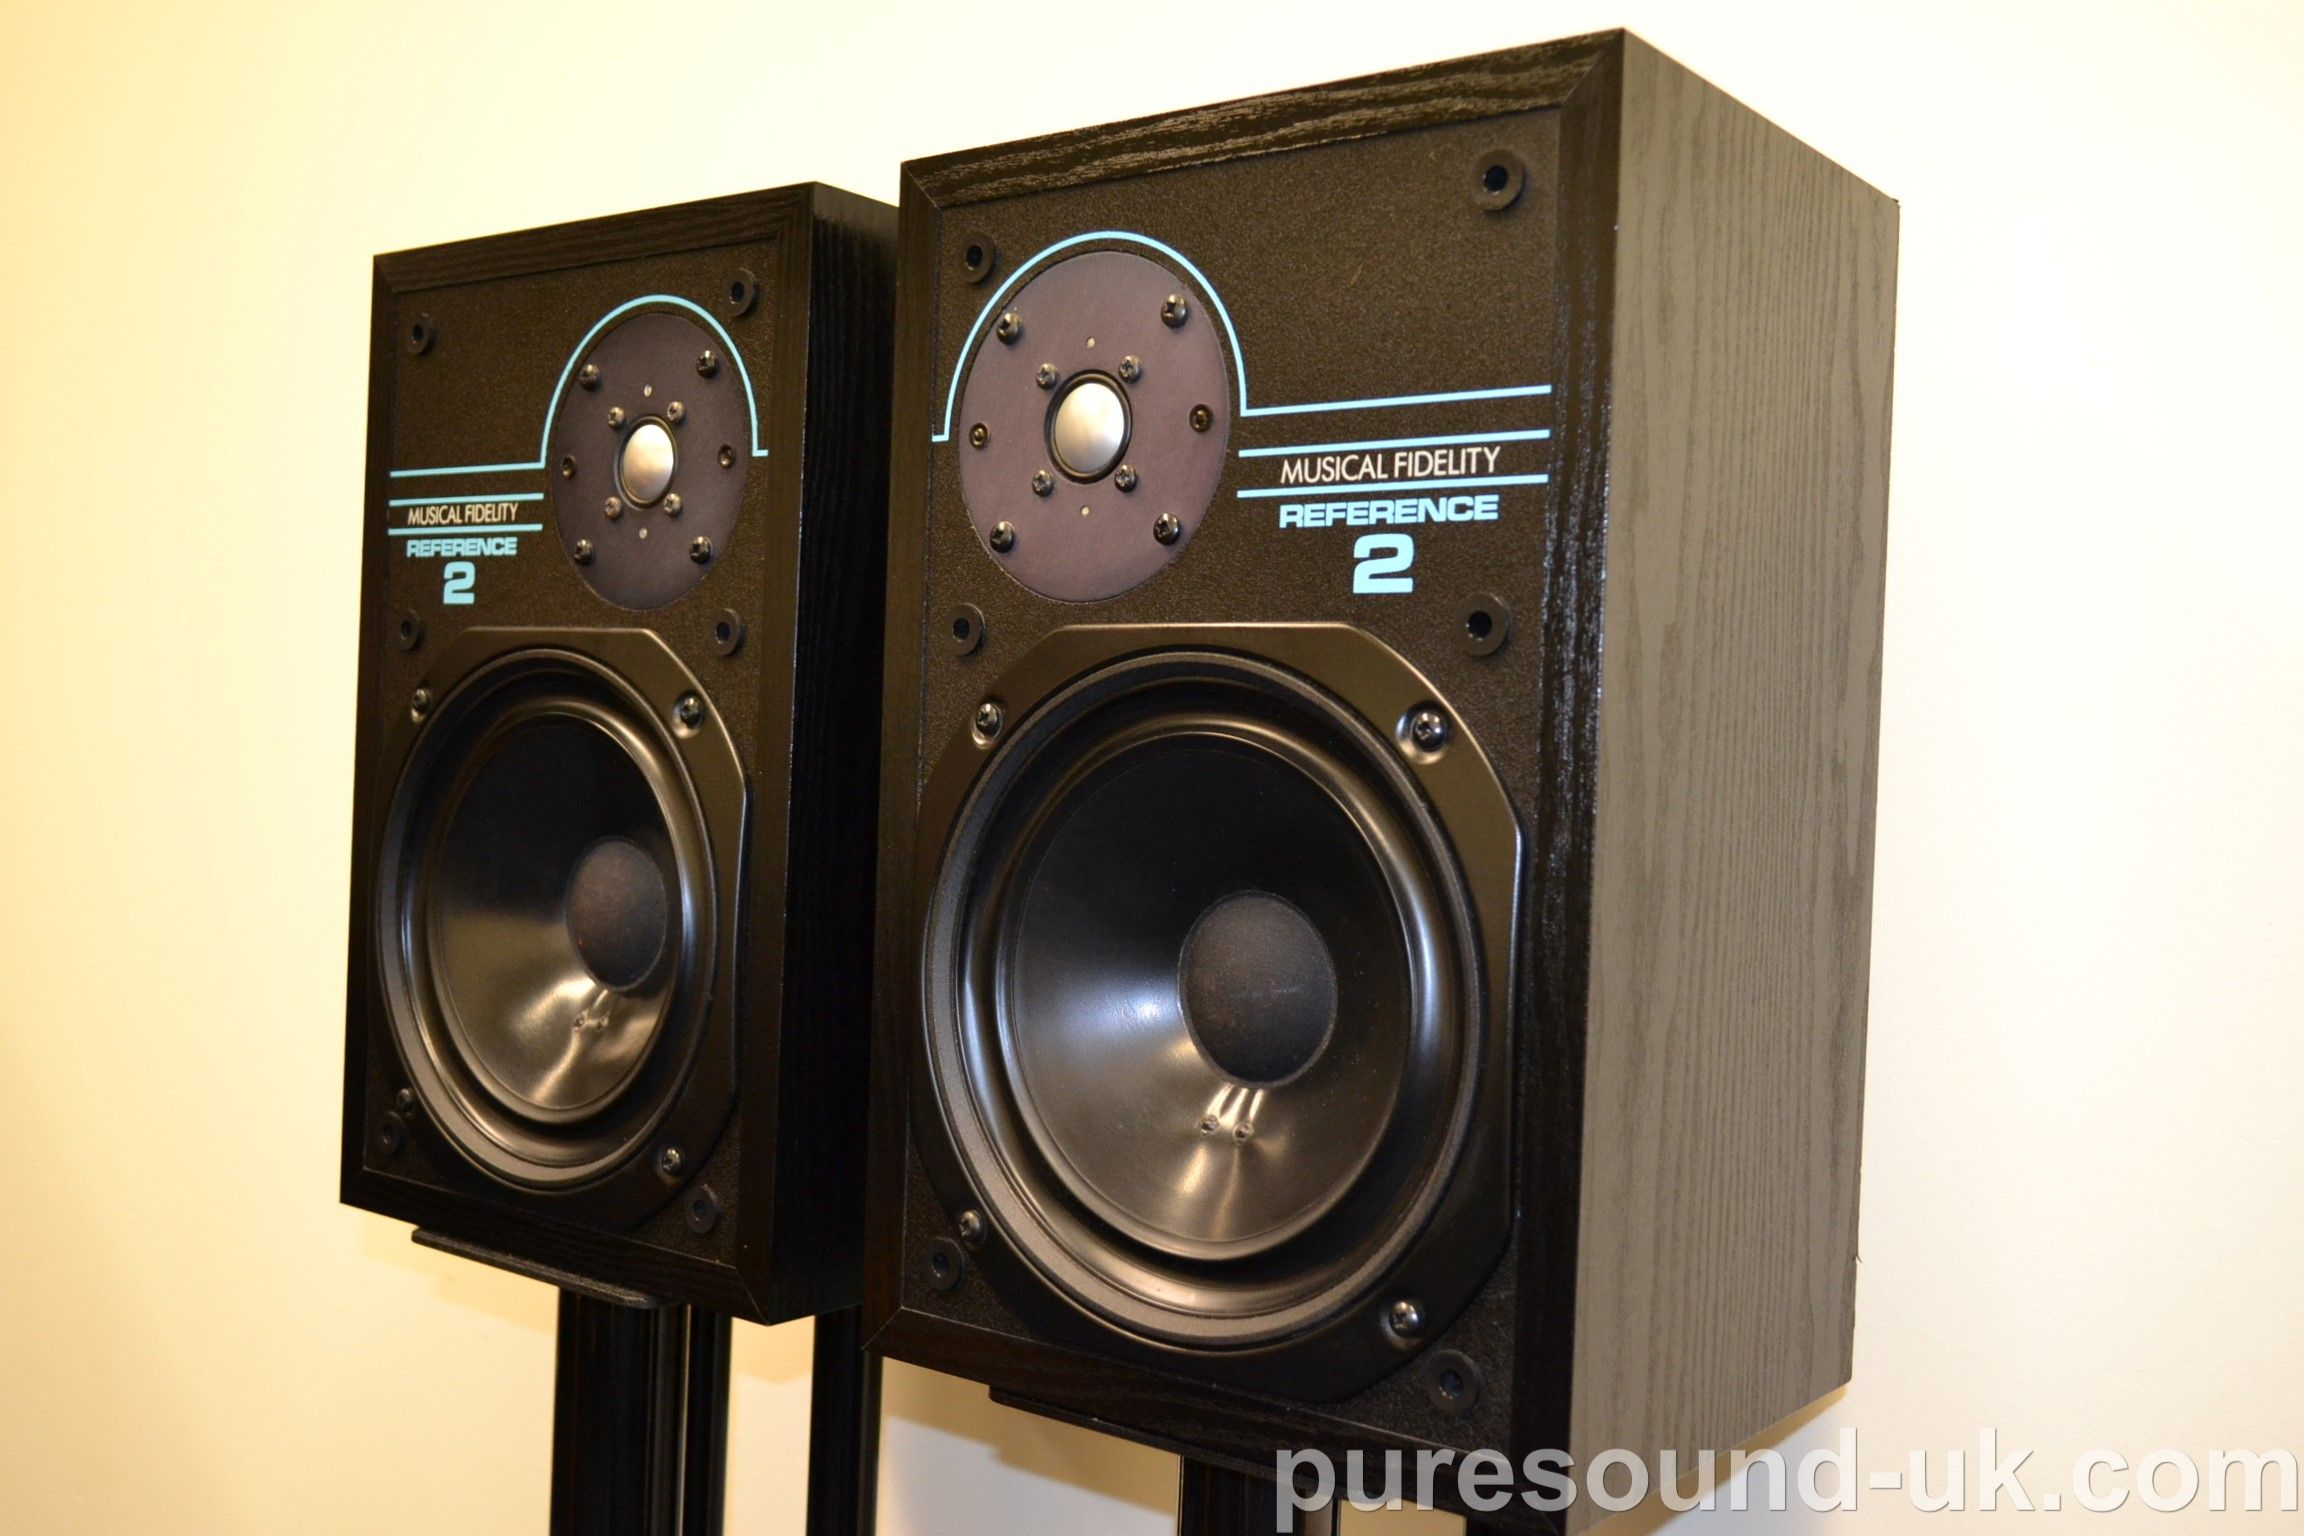 Musical Fidelity Reference 2